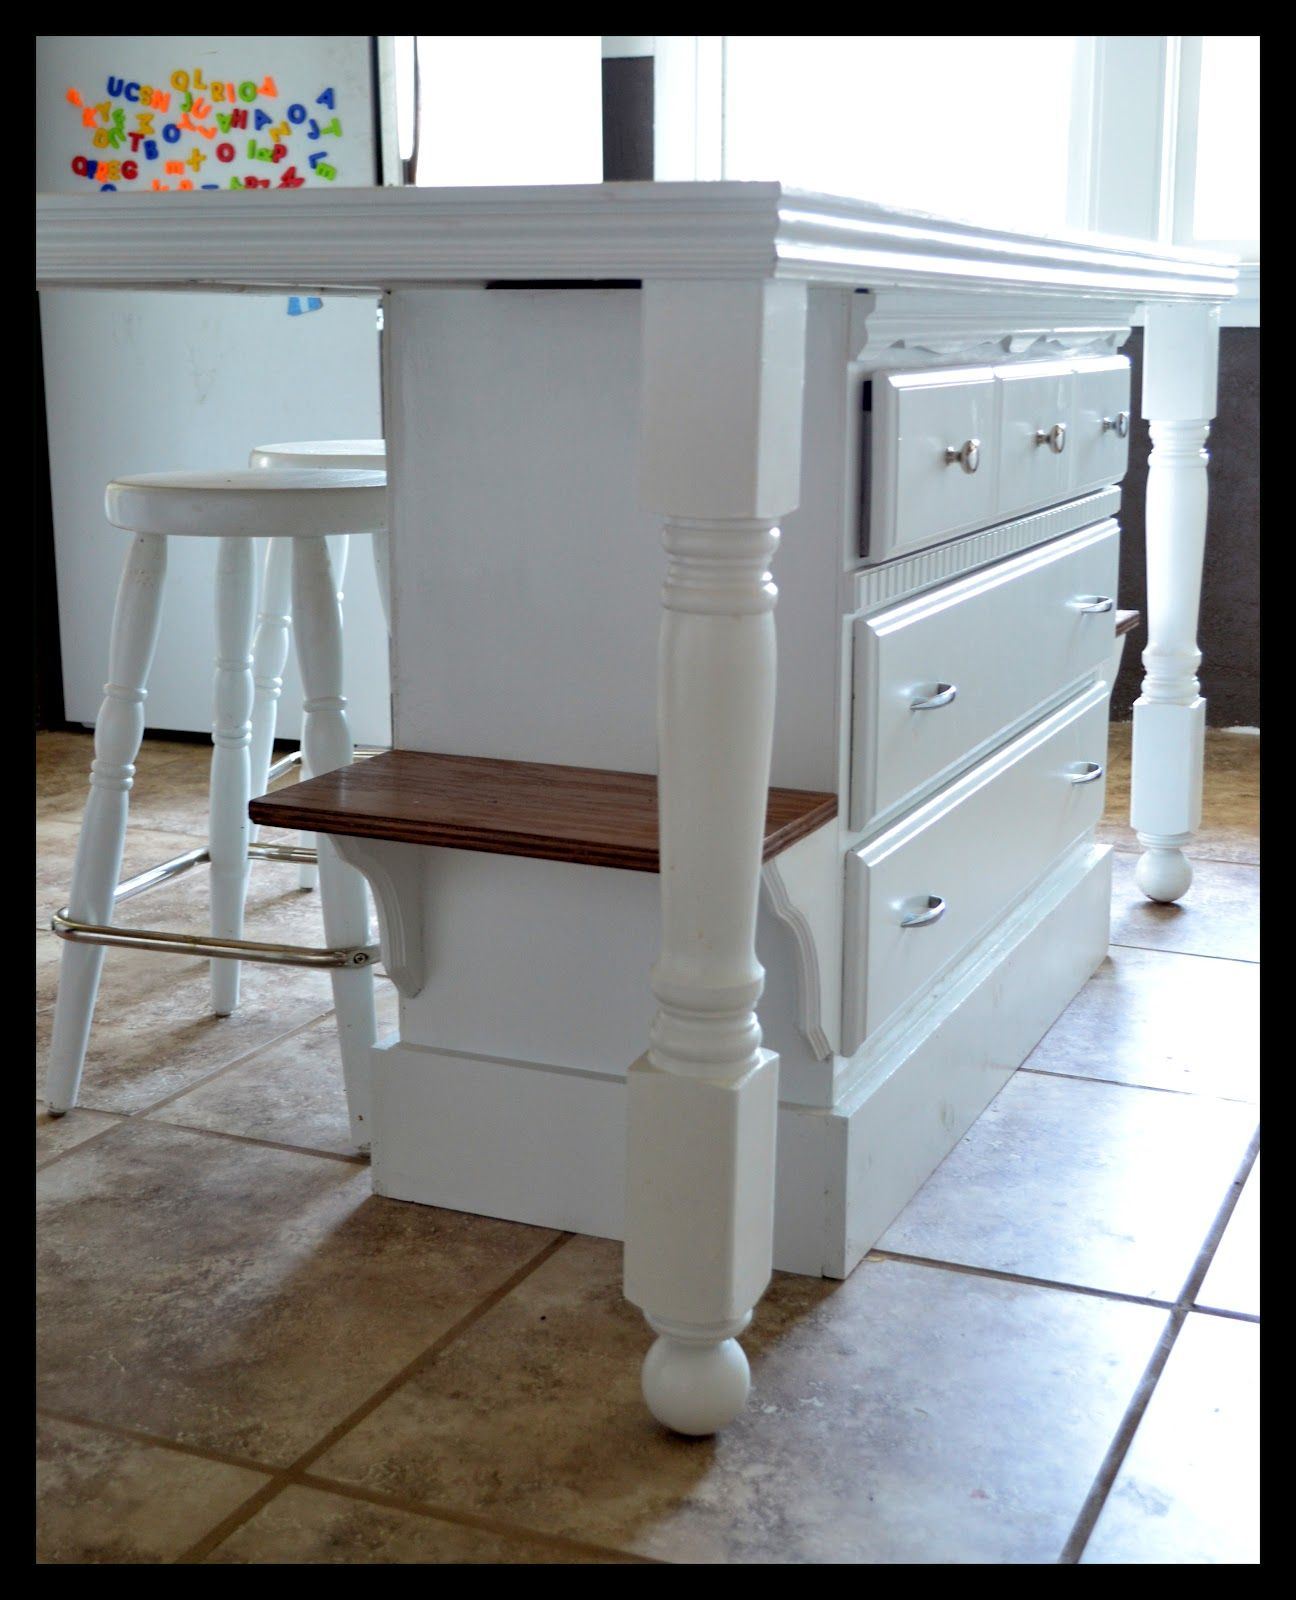 Small kitchen islands with stools small town small - Inexpensive kitchen island ideas ...